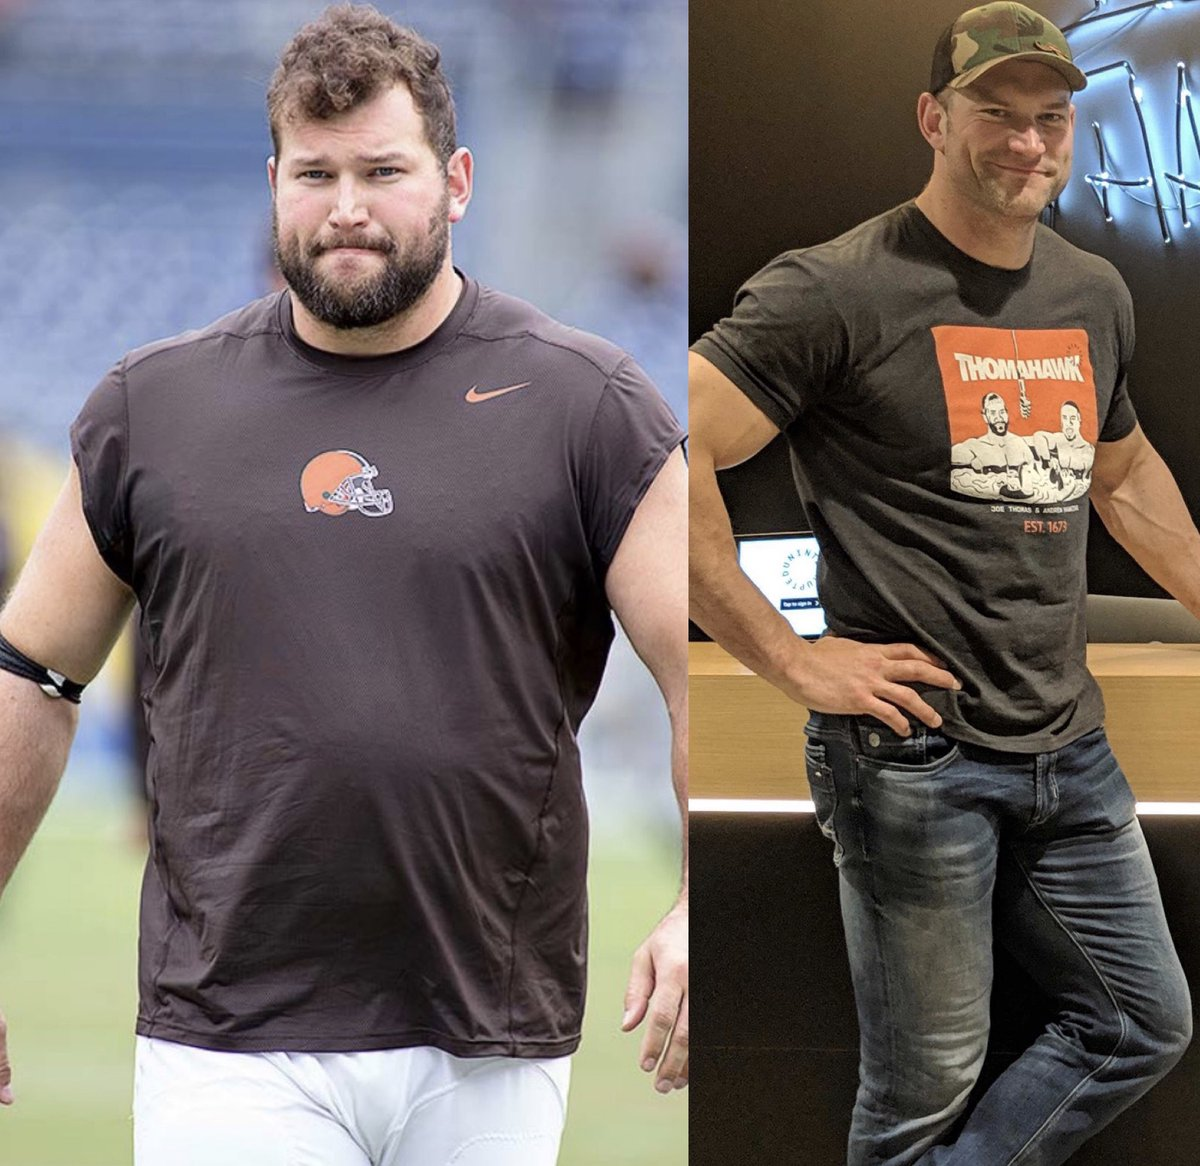 Use the Retweet button as a round of applause for @joethomas73 incredible transformation.